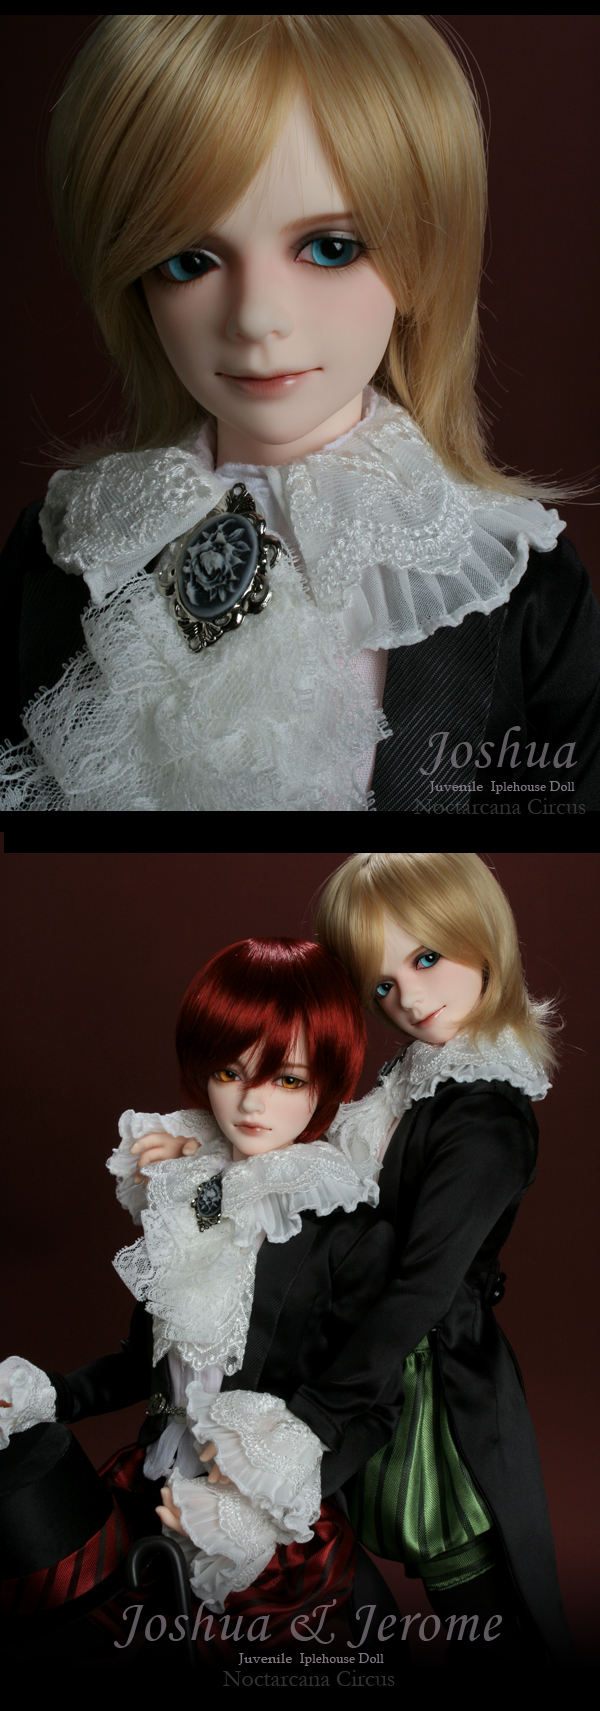 Joshua-Pierrot, ball joint doll, bjd